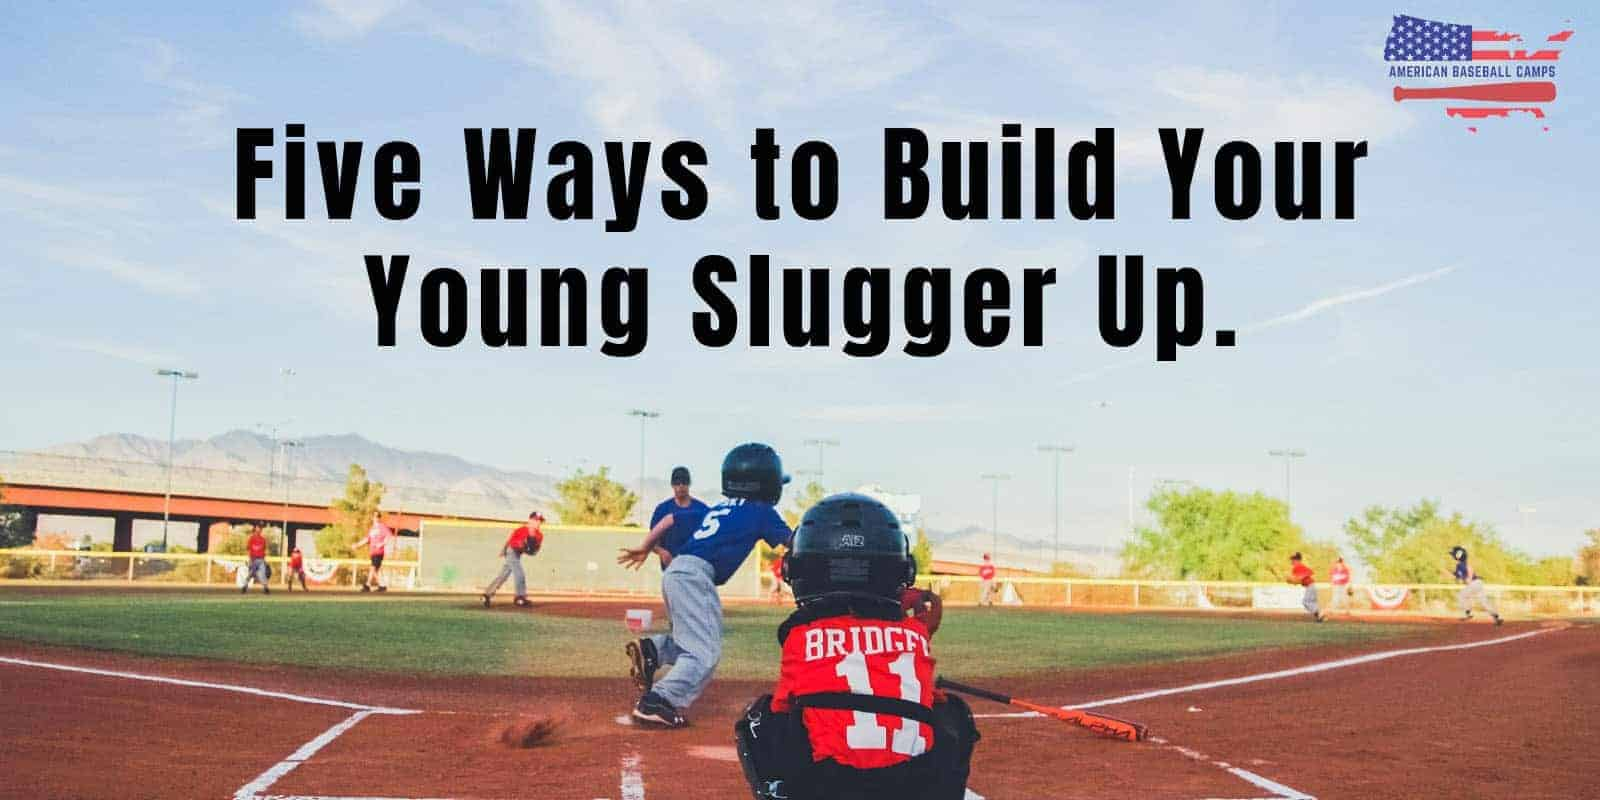 American Baseball Camps — Five Ways to Build Your Young Slugger Up